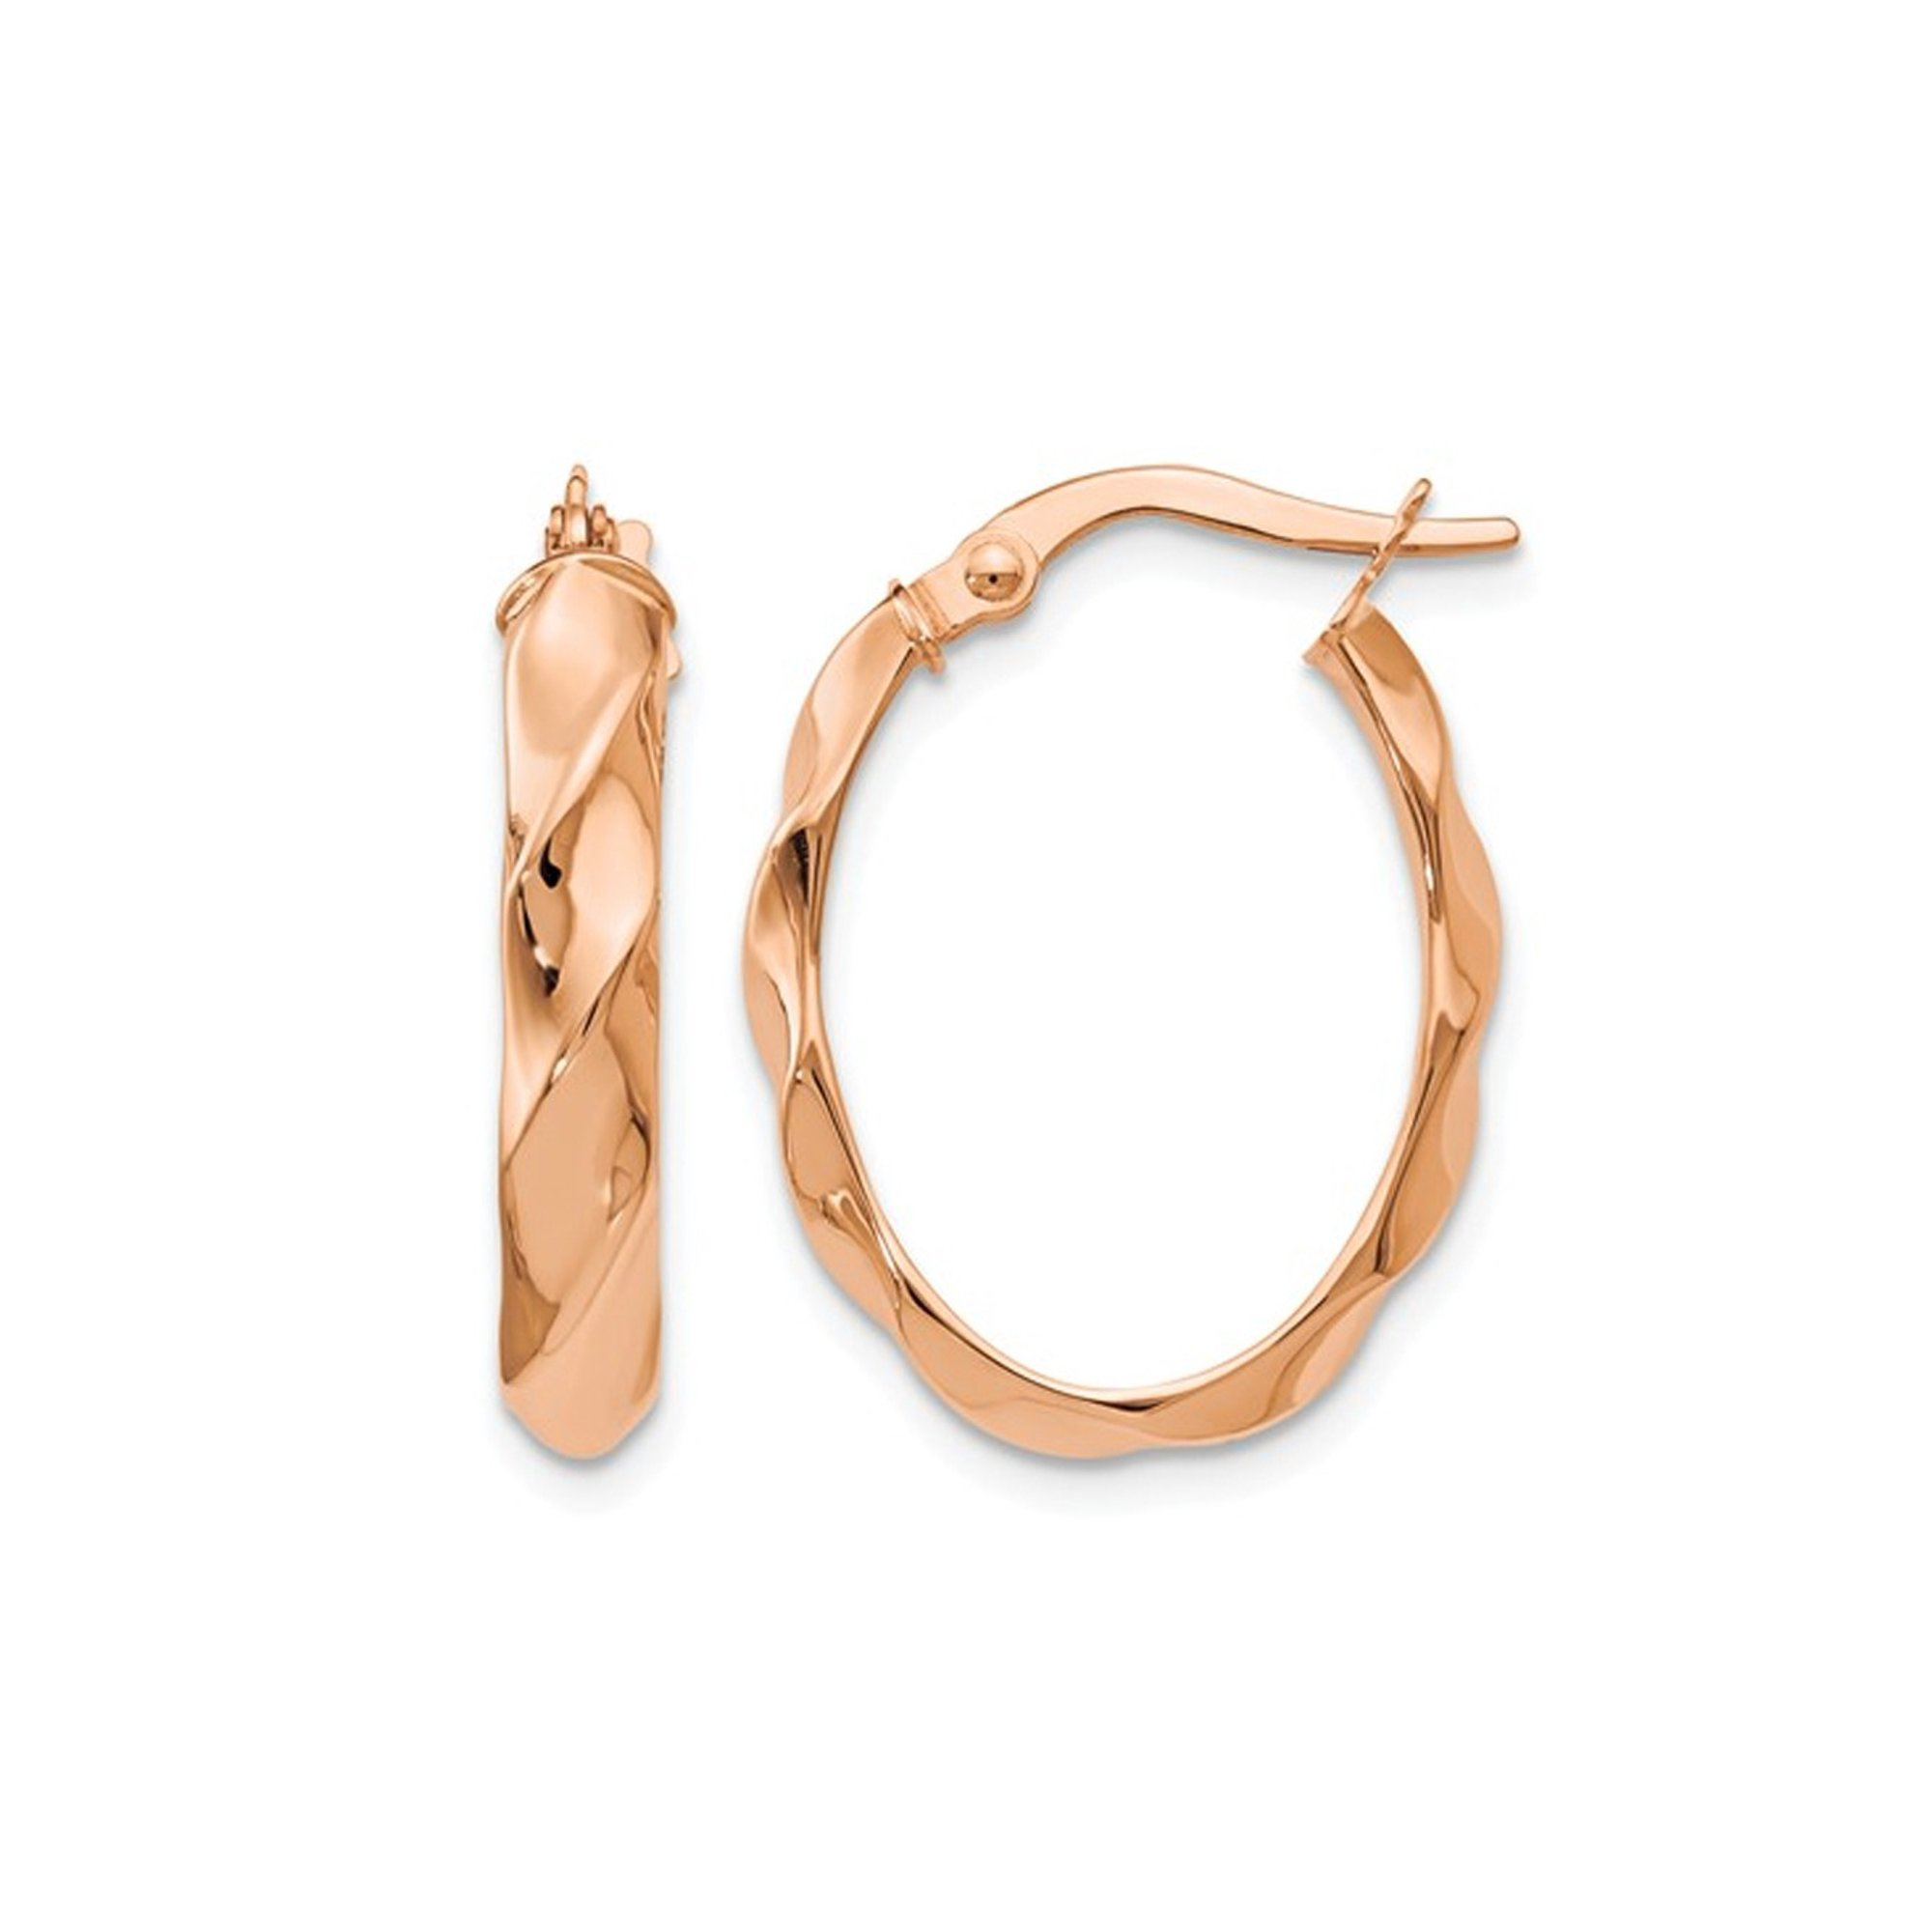 8f6a826cd6b09 Polished Twisted Hoop Earrings in 14K Rose Pink Gold (4.00 mm Thick)